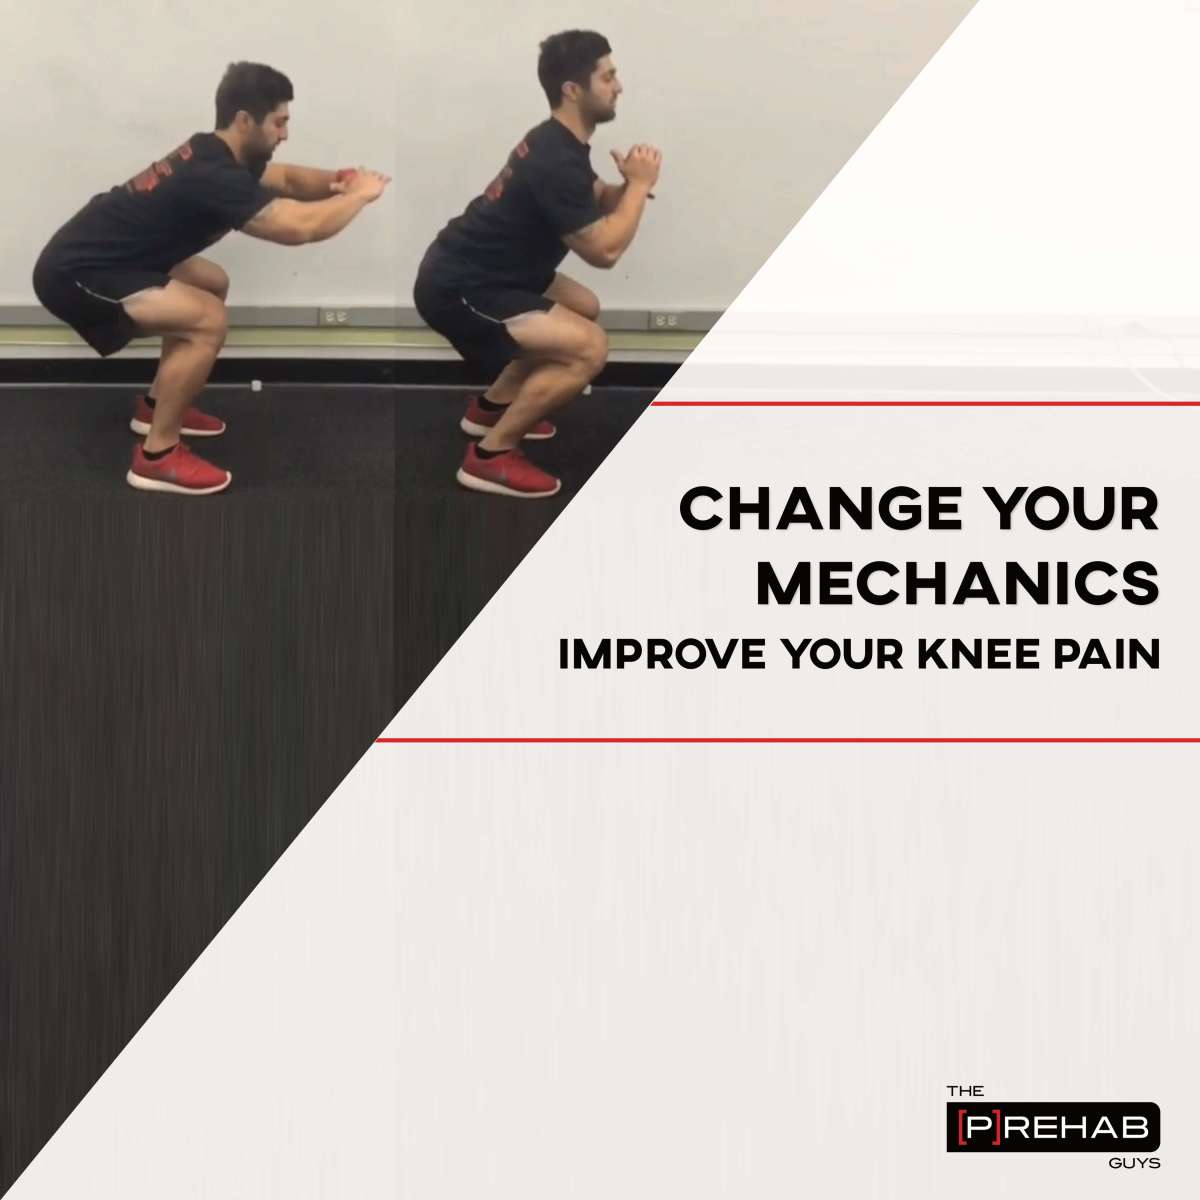 Change Your Mechanics to Improve Your Knee Pain